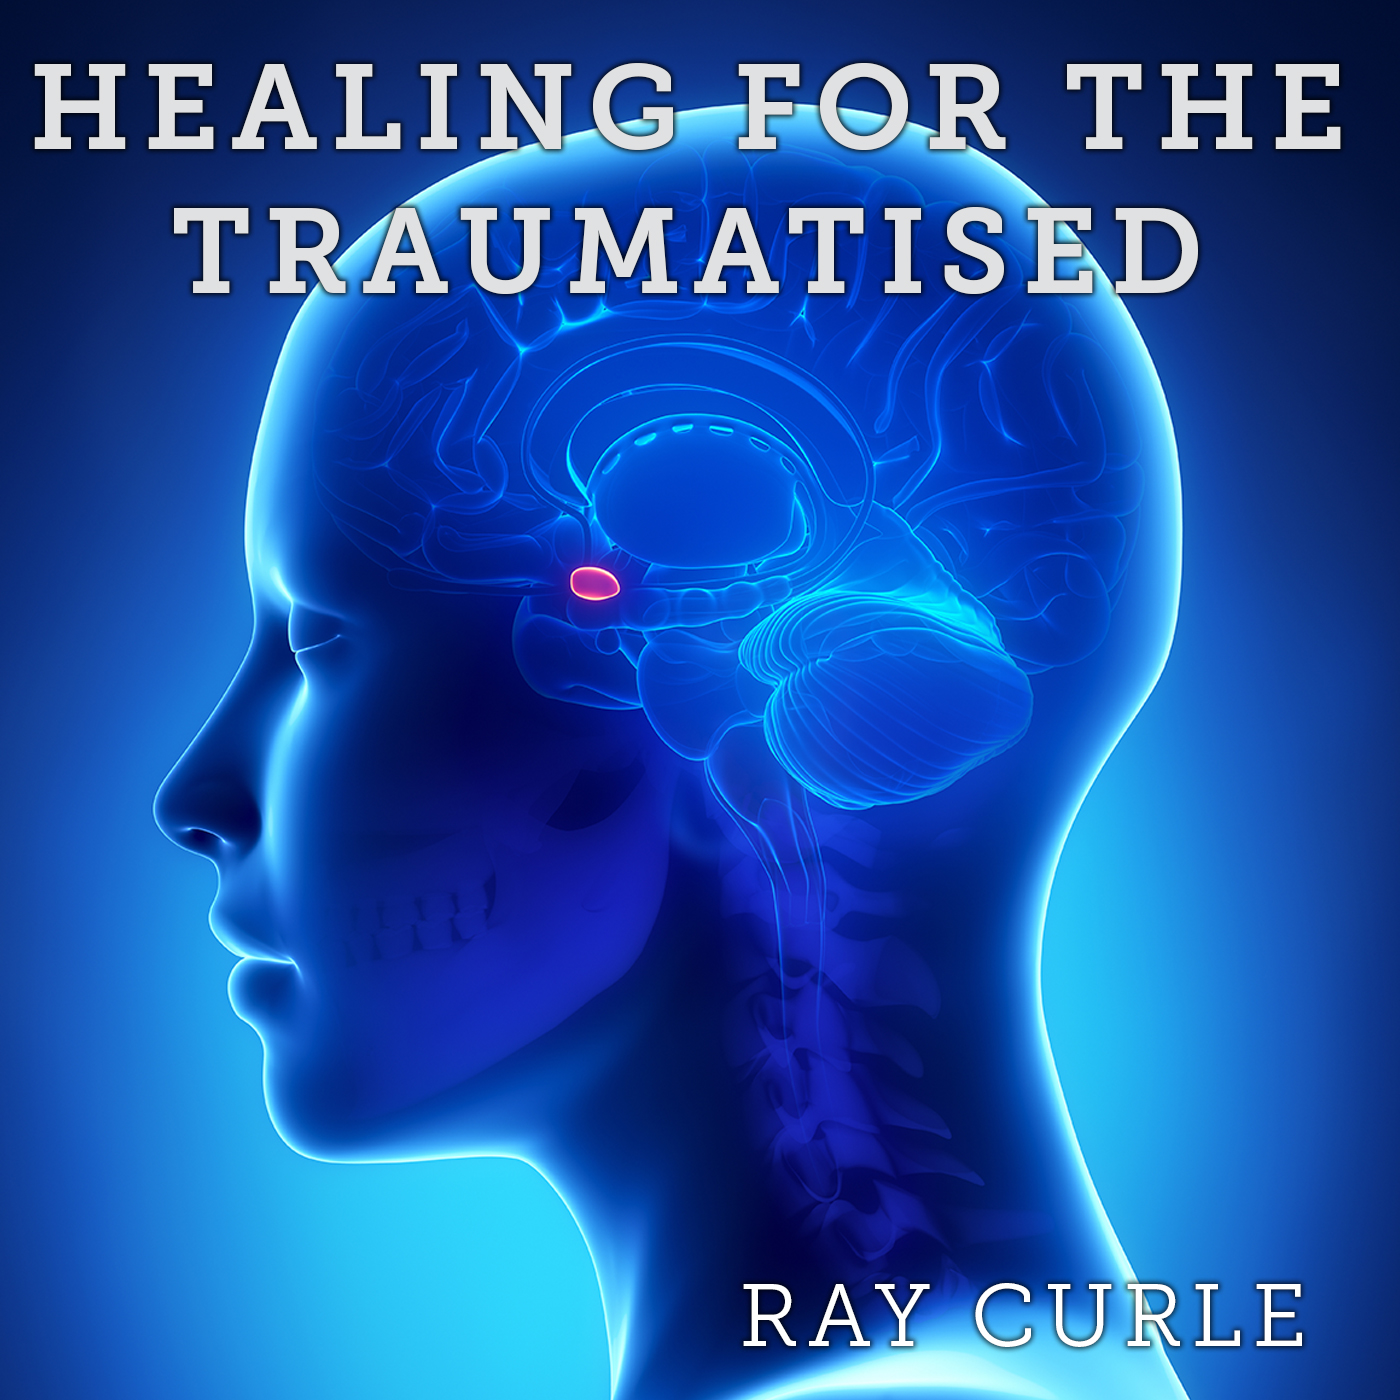 Healing for the traumatised